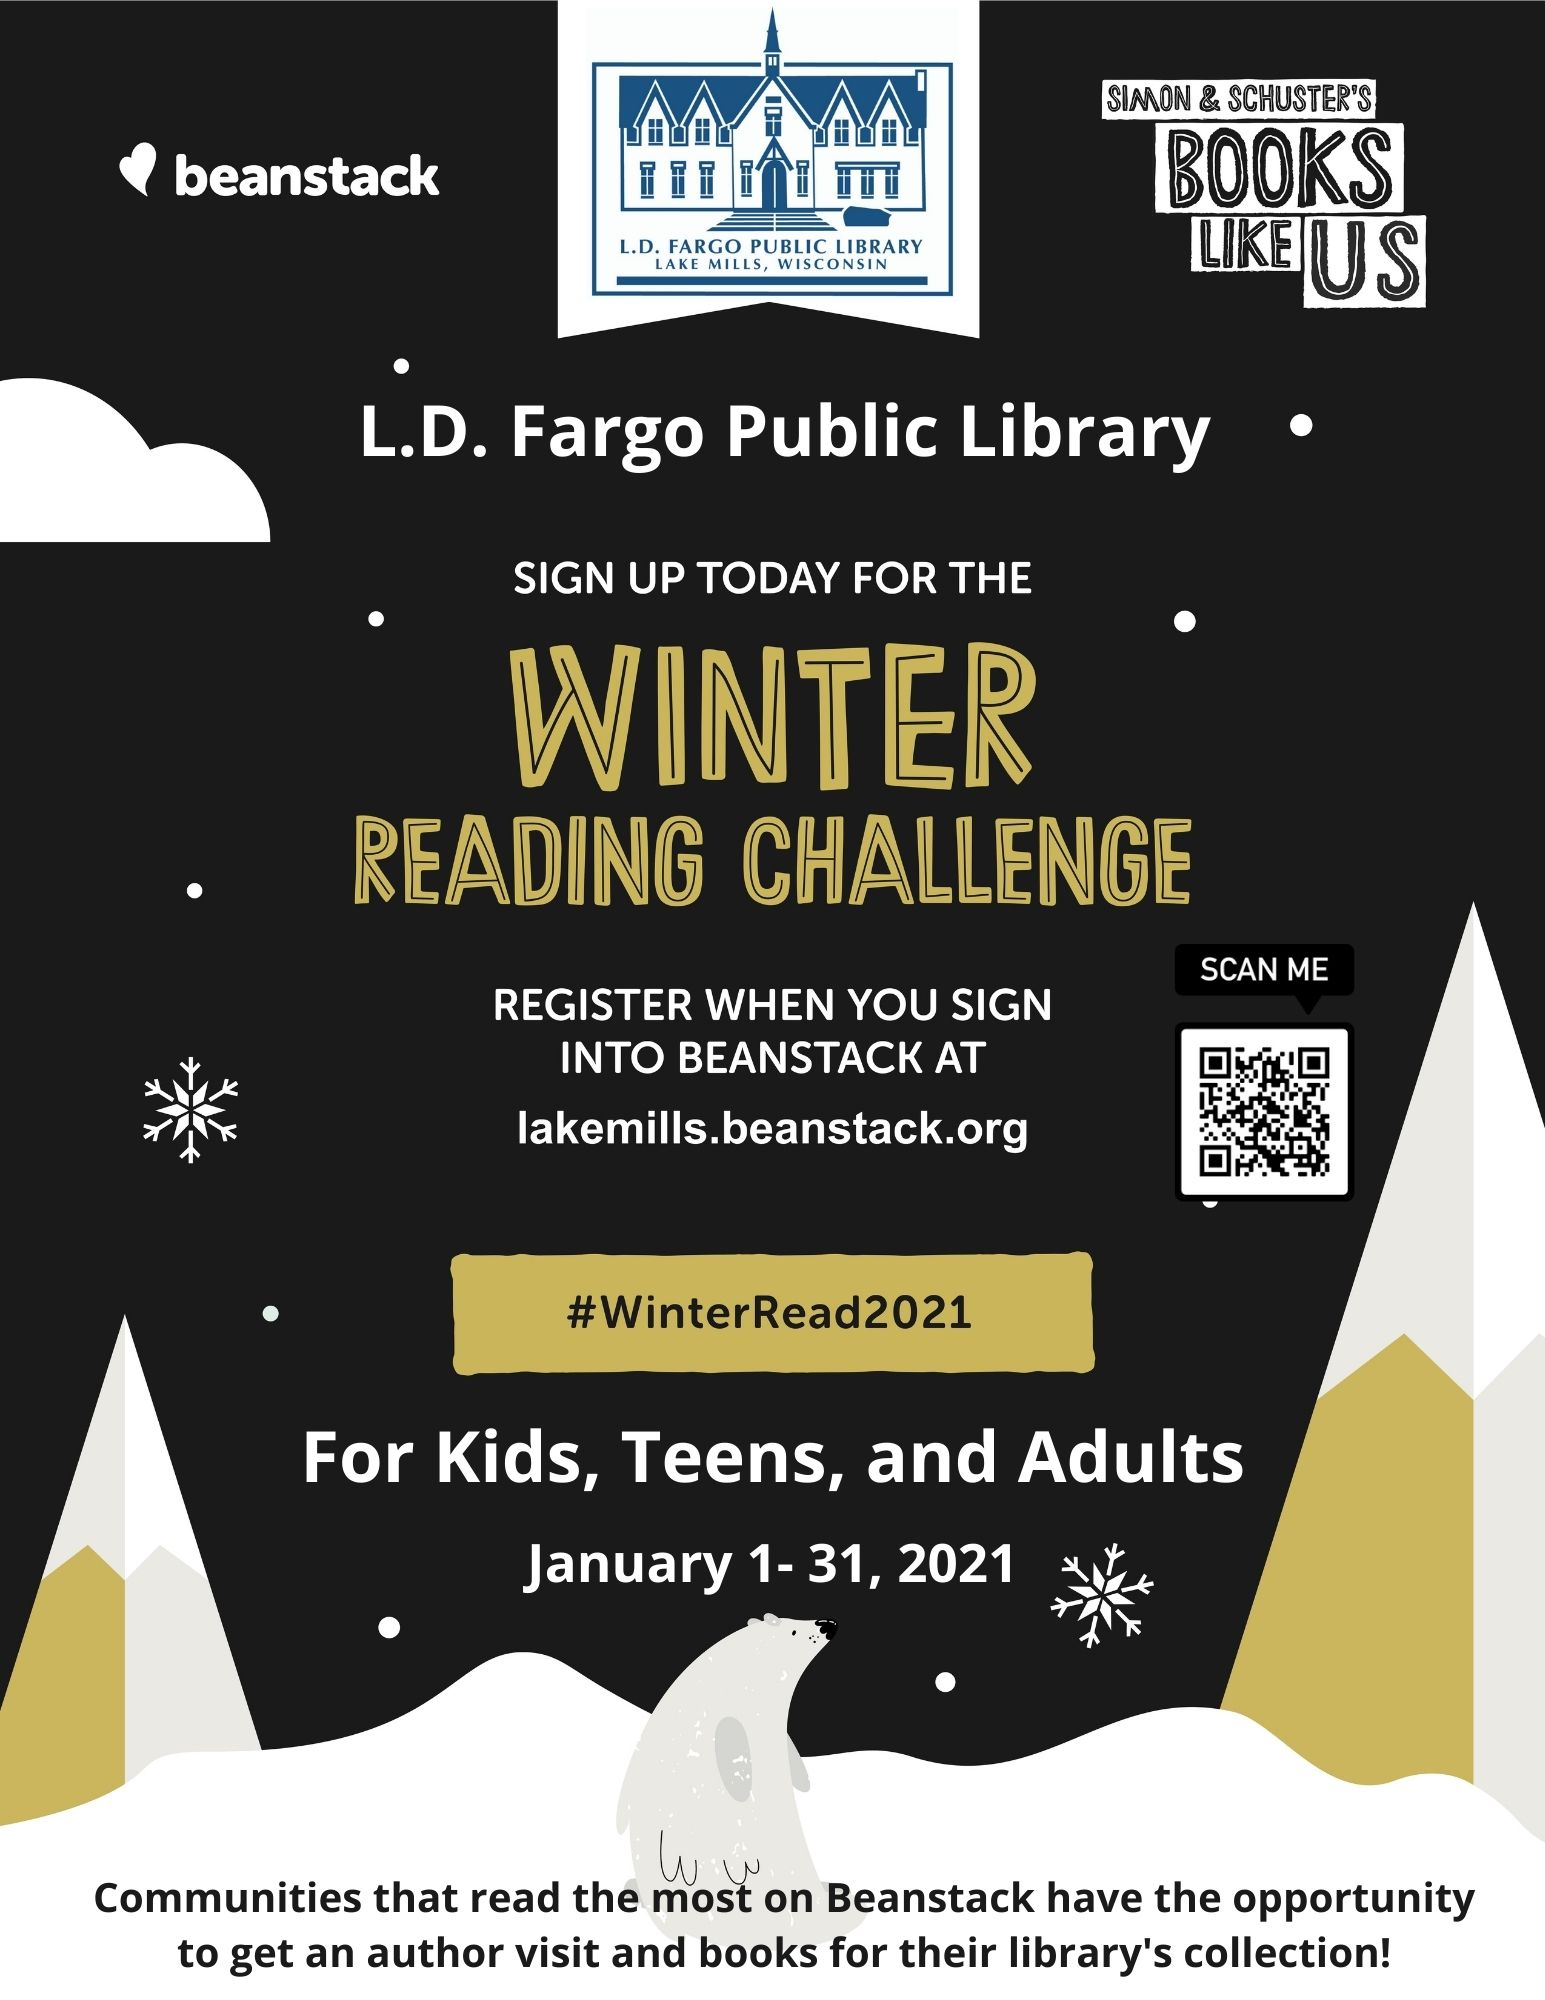 January 1-31. Sign up on Beanstack!  For Children, Teens, and Adults.  Read 5 hours to receive a prize!  Communities that read the most on Beanstack have the opportunity to get an author visit and books for their library's collection!